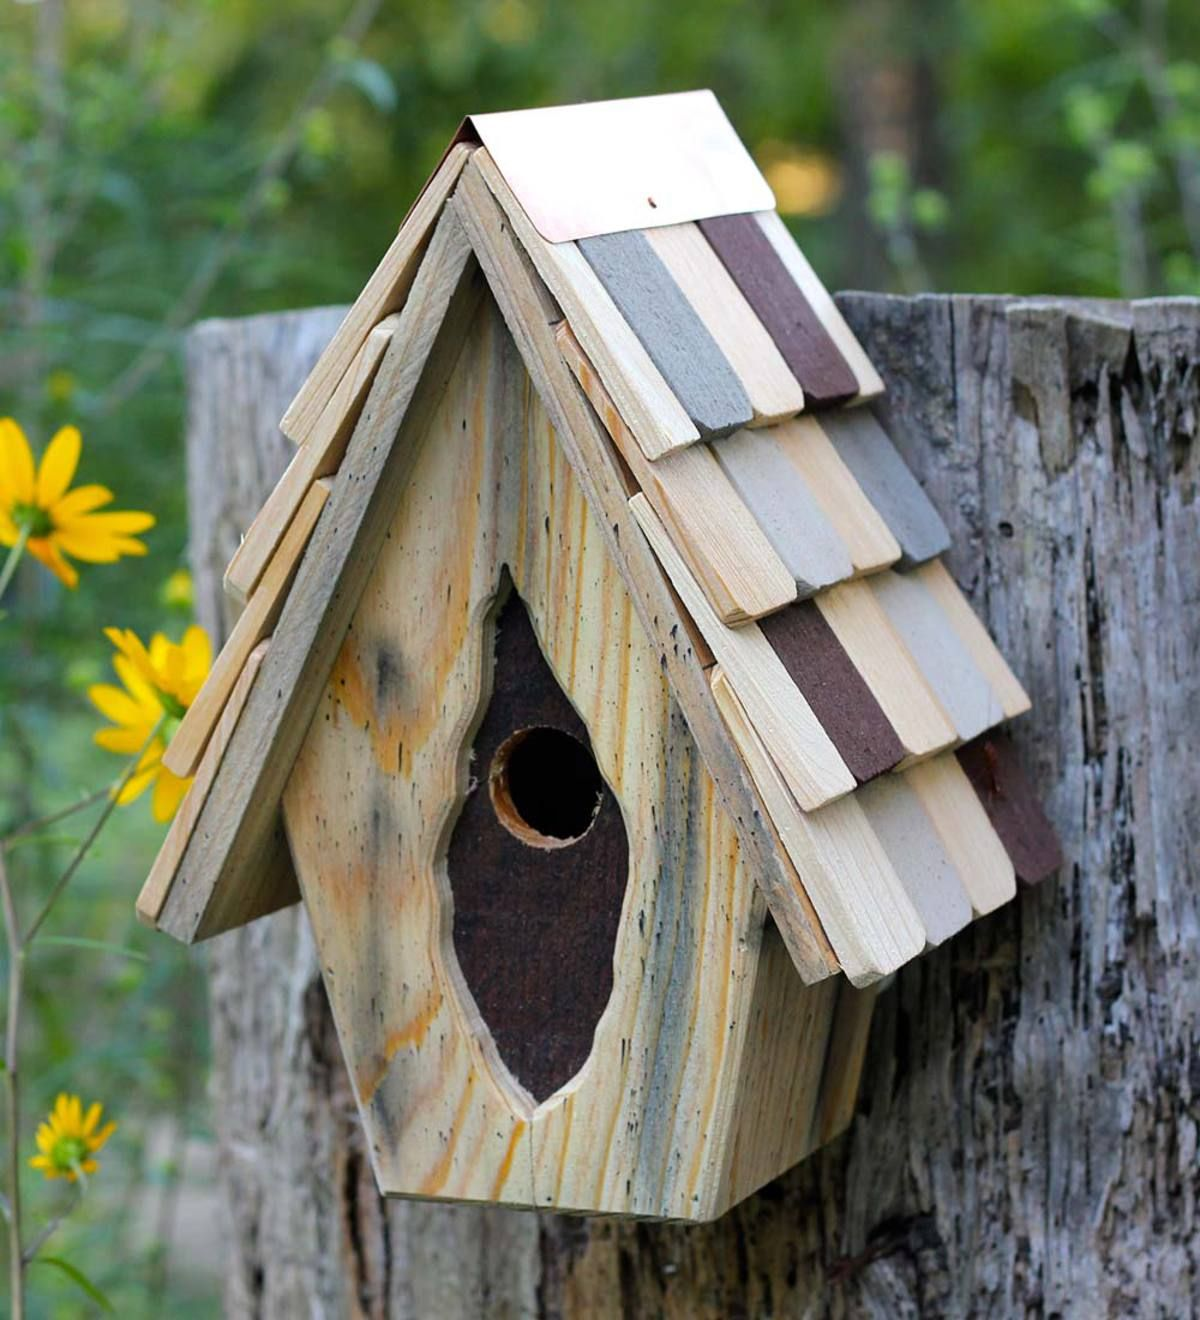 Better Than Antique The Charming Vintage Wren Birdhouse Enchants Humans And Birds Alike With A Weathered Look And Whimsical Design Stra Bird Houses Wren